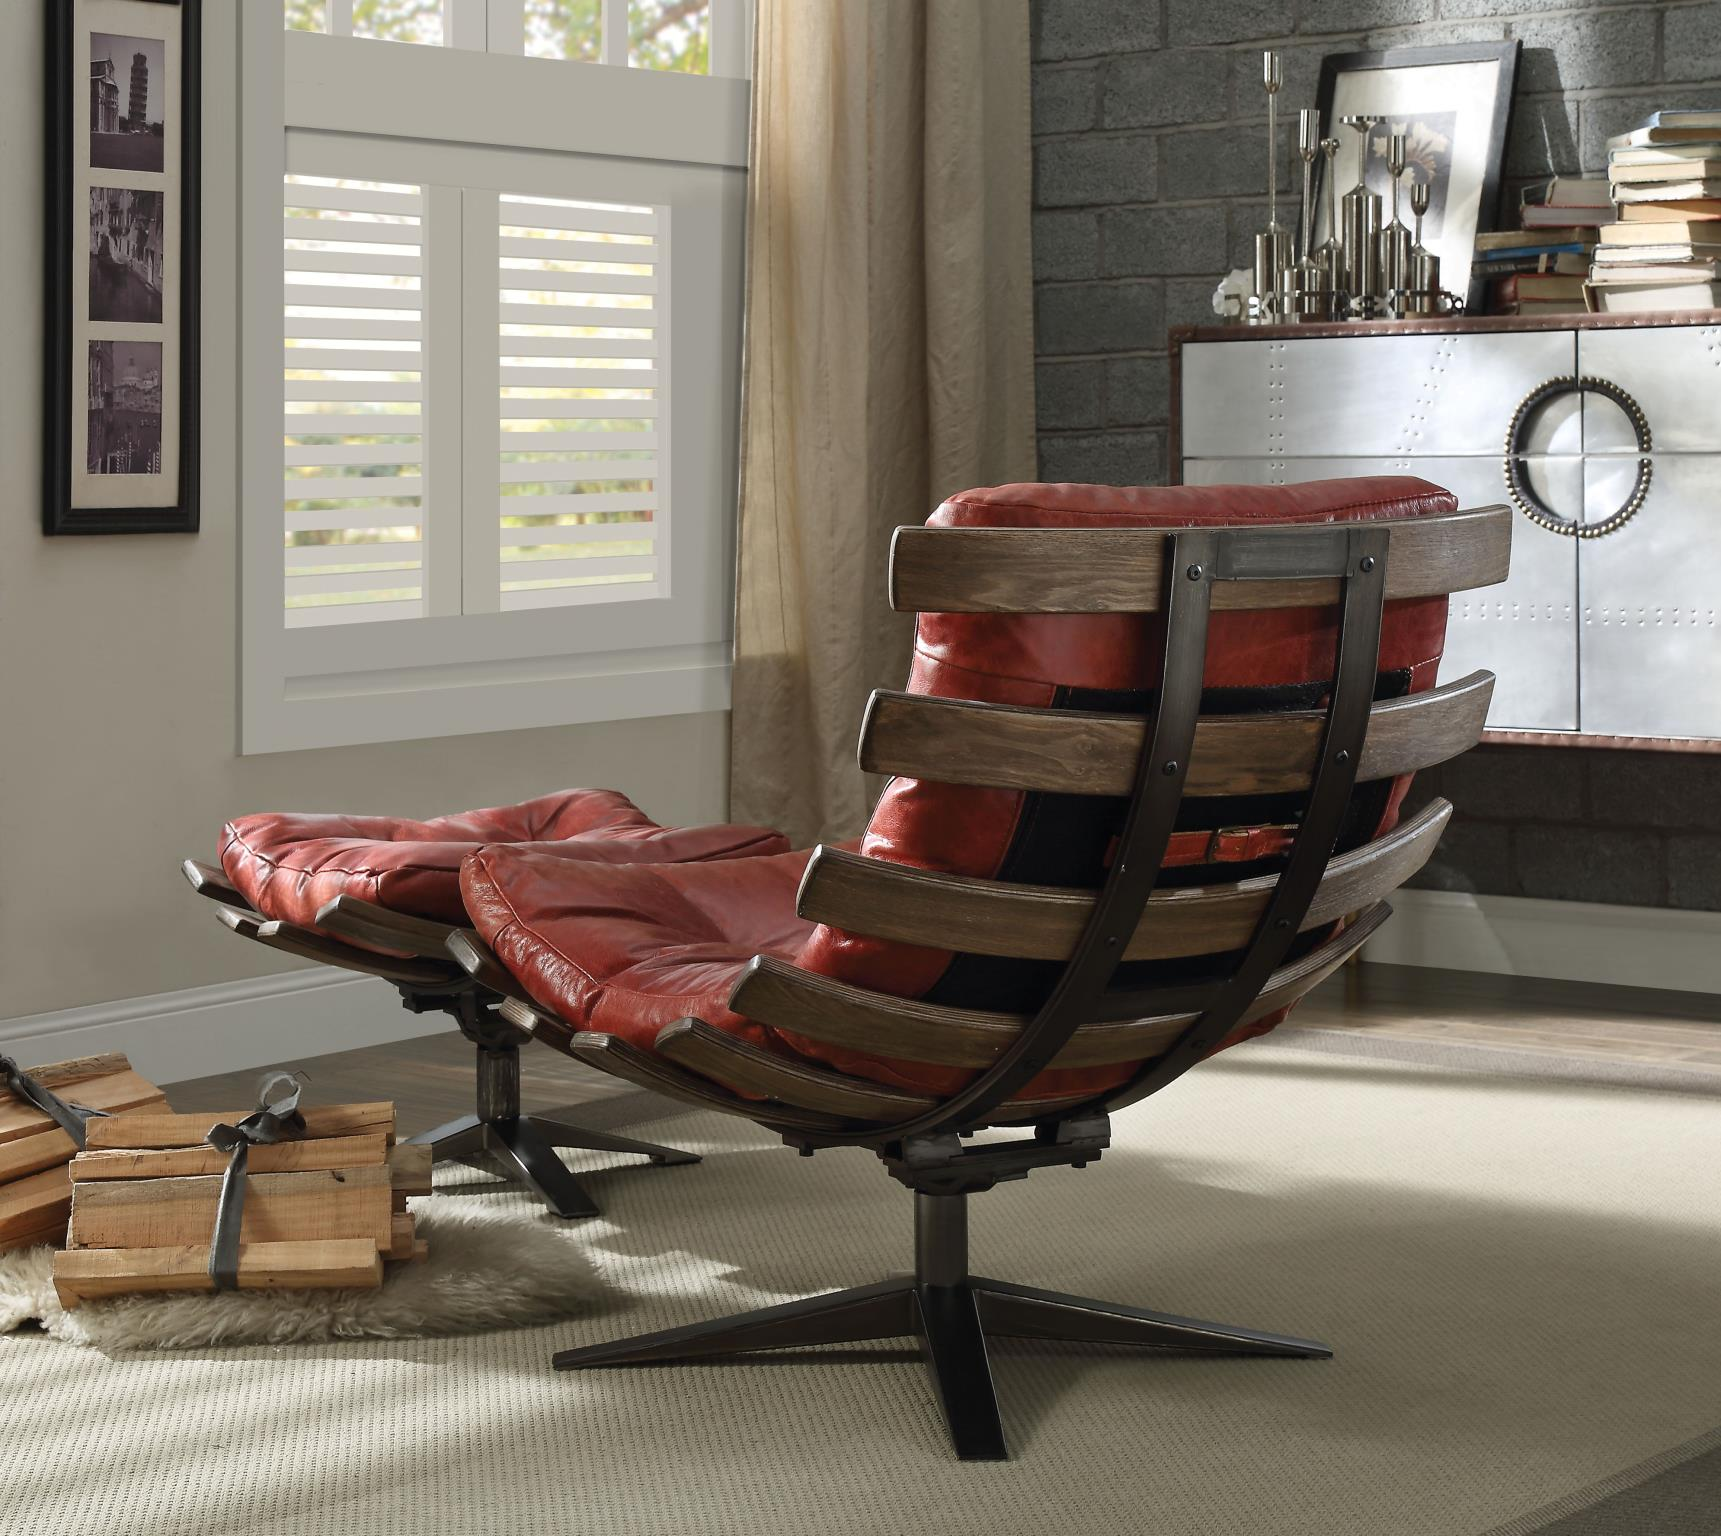 Antique Red Swivel Chair and Ottoman Back View